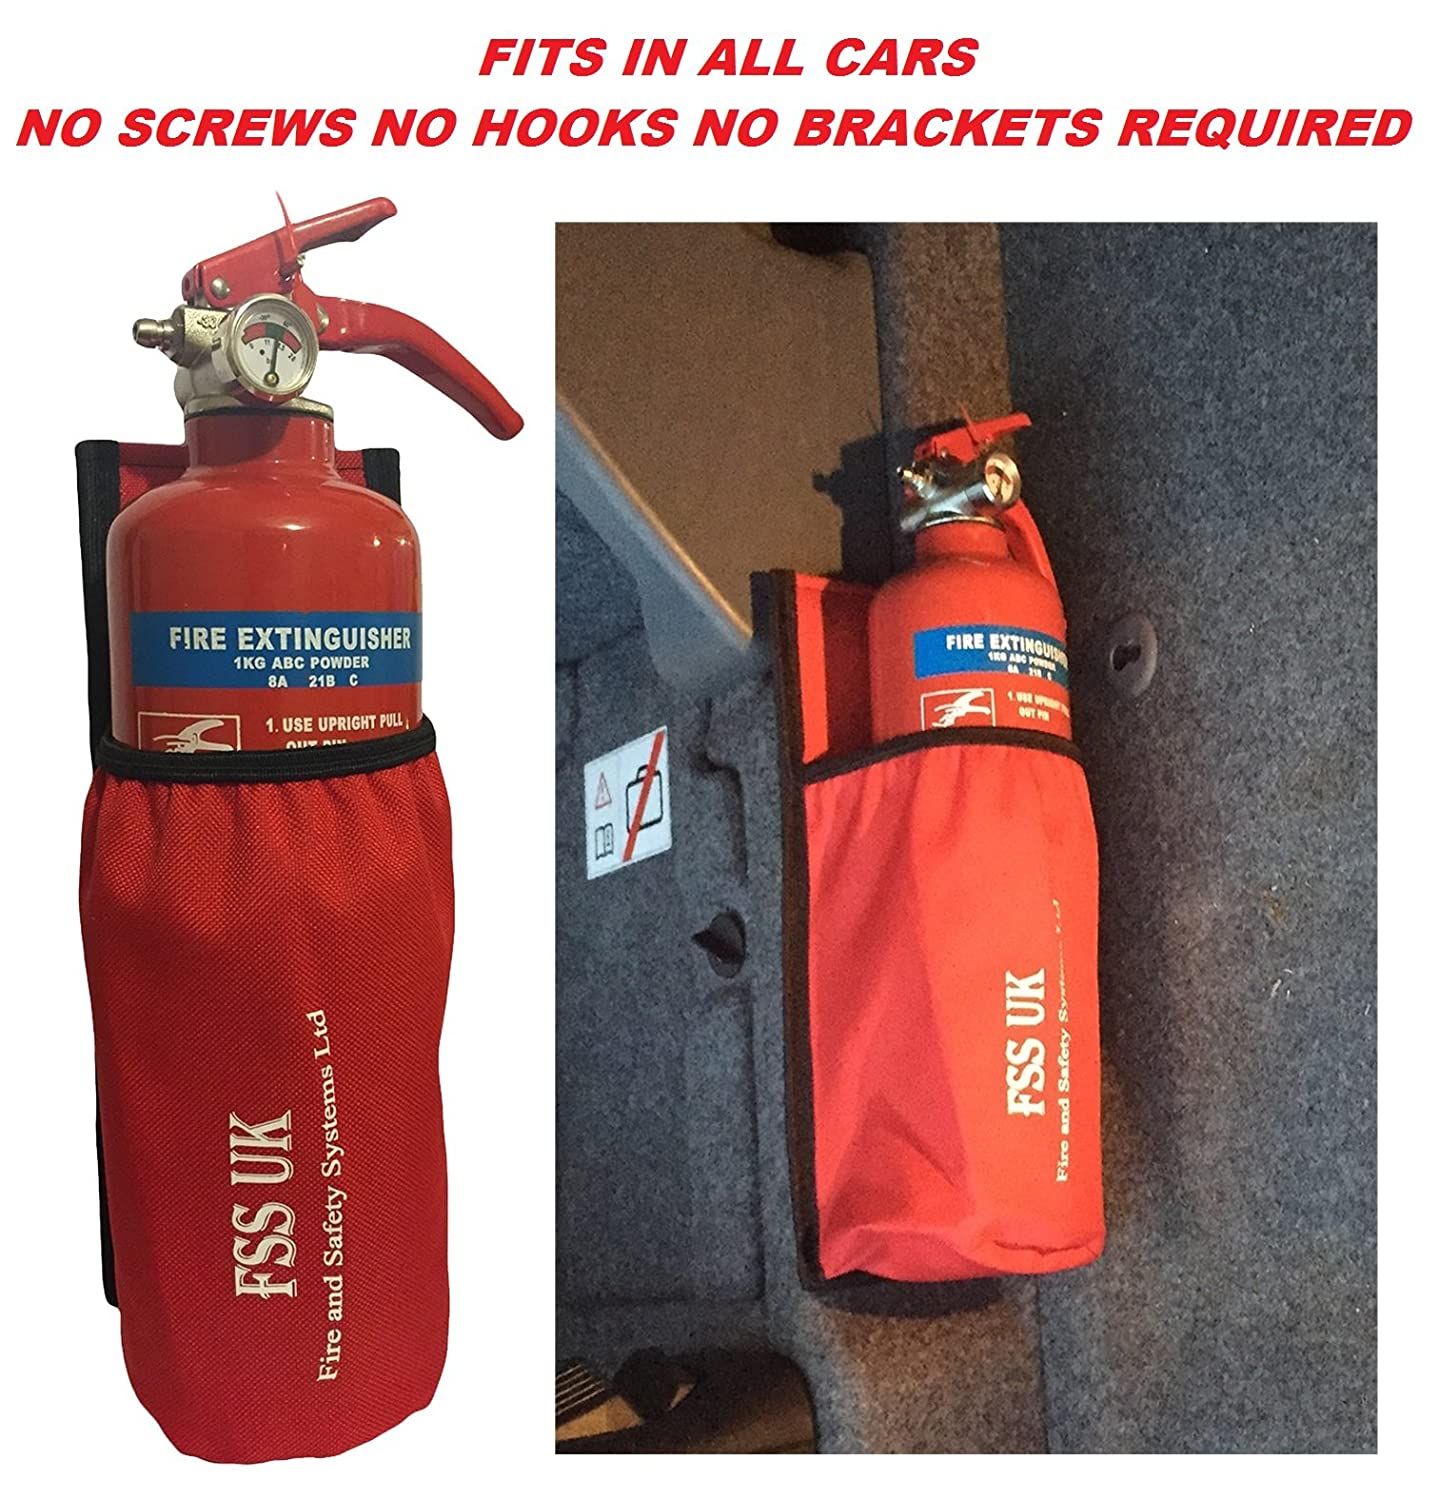 CAR VAN TAXI FIRE EXTINGUISHER. REQUIRES NO SCREWS NO BRACKETS NO HOOKS. 1 KG ABC DRY EXTINGUISHER WITH UNIVERSAL CAR TAXI VAN FIRE EXTINGUISHER HOLDER POUCH WITH HEAVY DUTY STICKY BACK. FSS UK